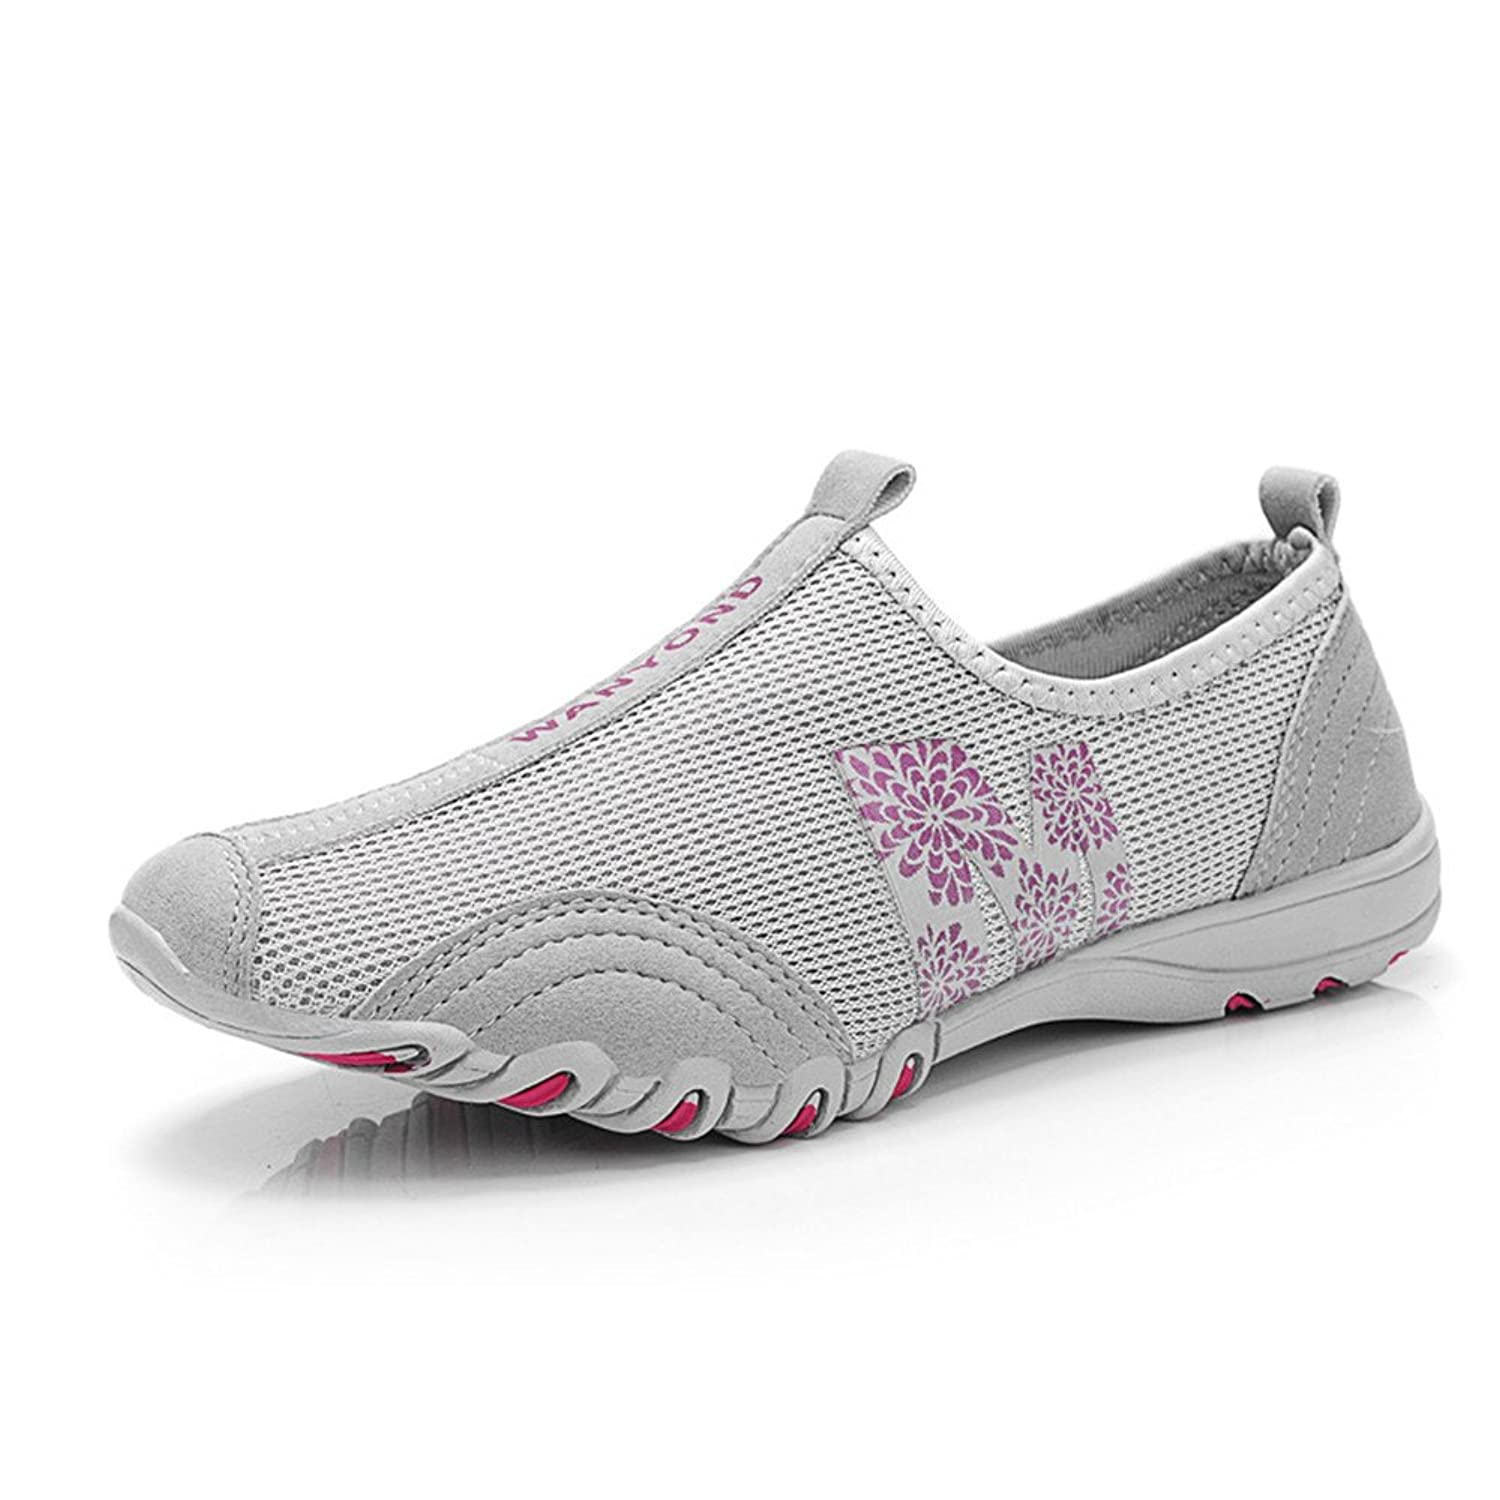 TooTa Breathable Mesh Exercise Athletic Outdoor Slip On Shoes For Women Running Shoes